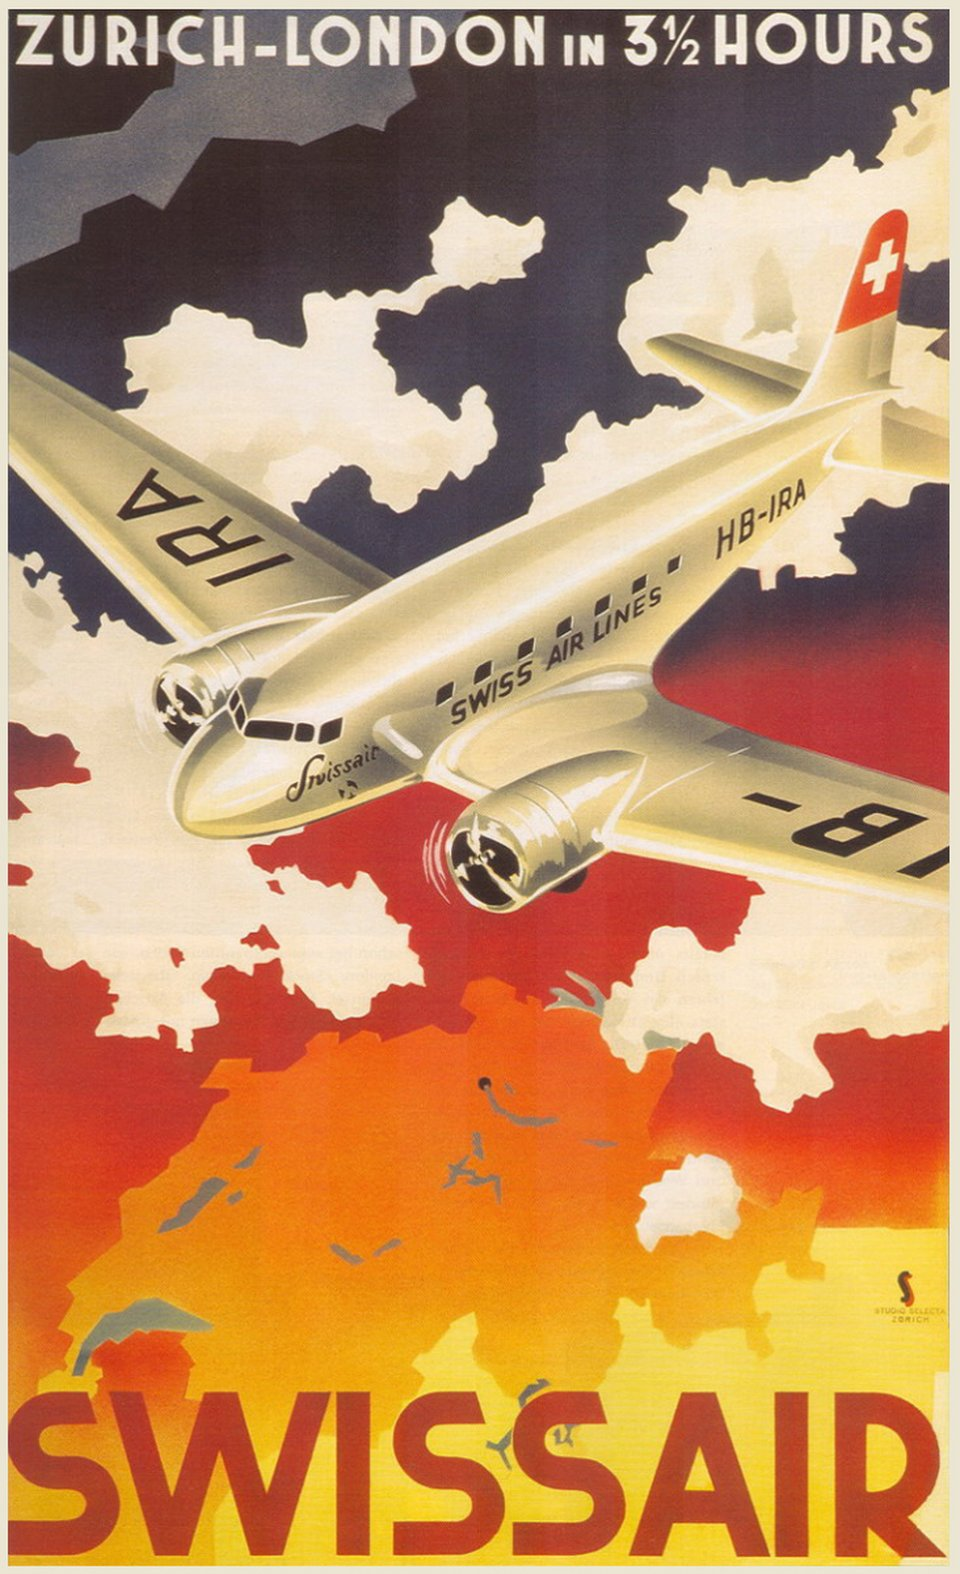 Swissair DC-3 HB-IRA, Zürich London in 3.5 hours – Vintage poster – SS, Studio SELECTION – 1937